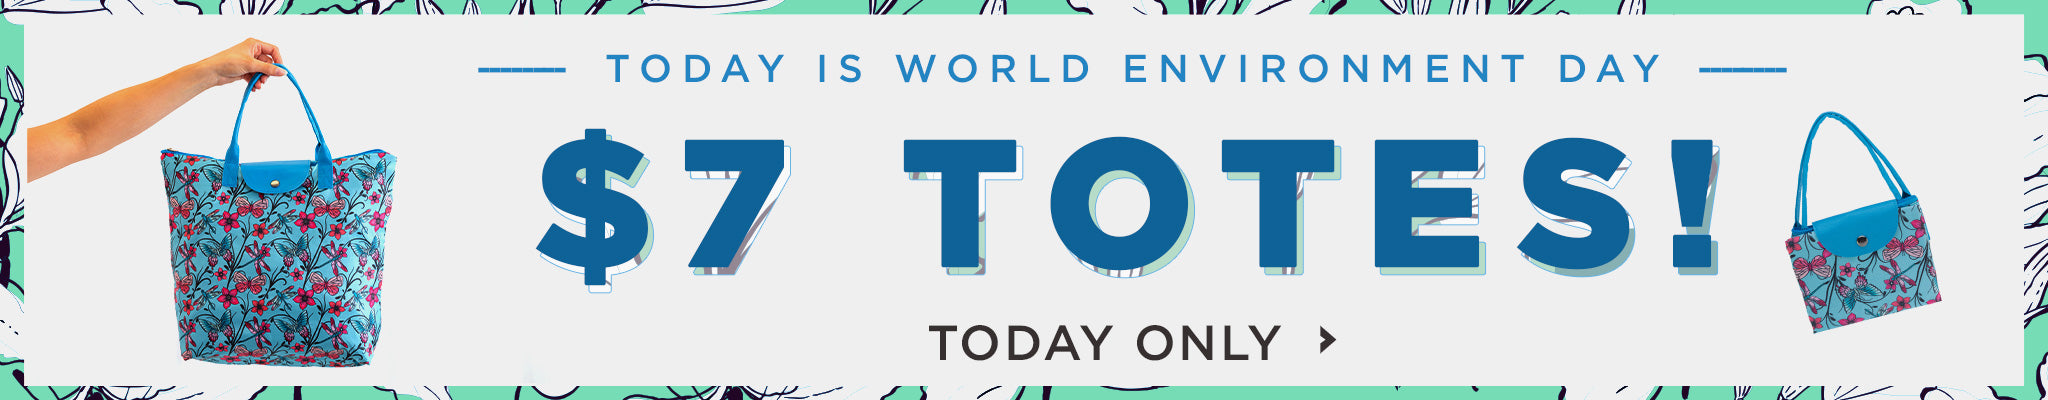 Today is World Environment Day! | $7 Totes | Today Only